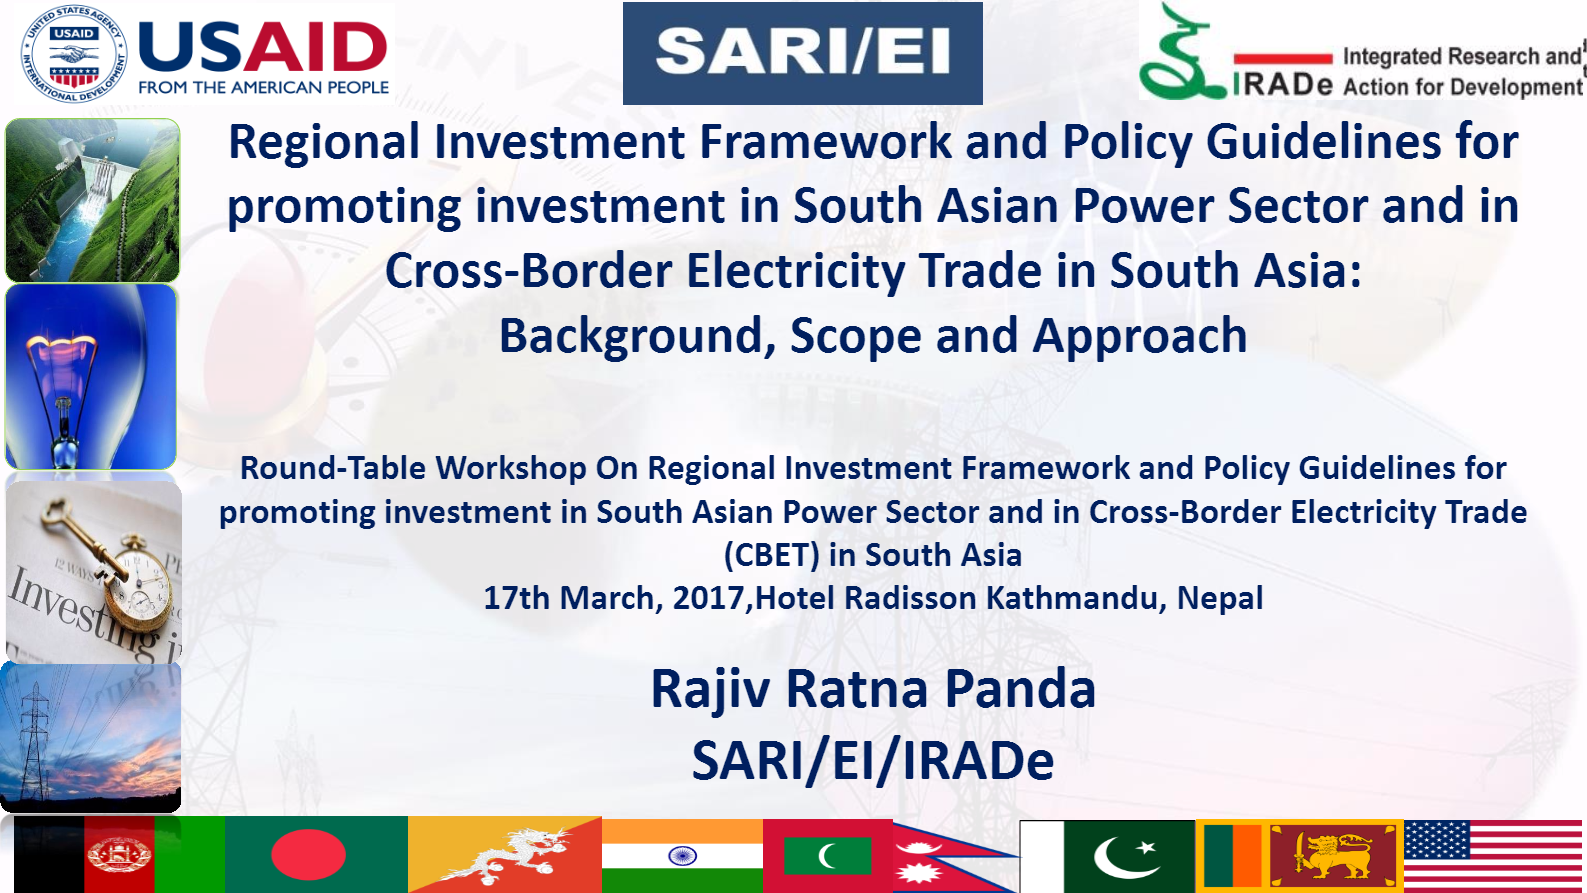 Regional-Investment-Framework-and-Policy-Guidelines-for-promoting-investment-in-SA-Power-Sector-and-in-CBET-in-South-Asia-Background-Scope-and-Approach-Rajiv